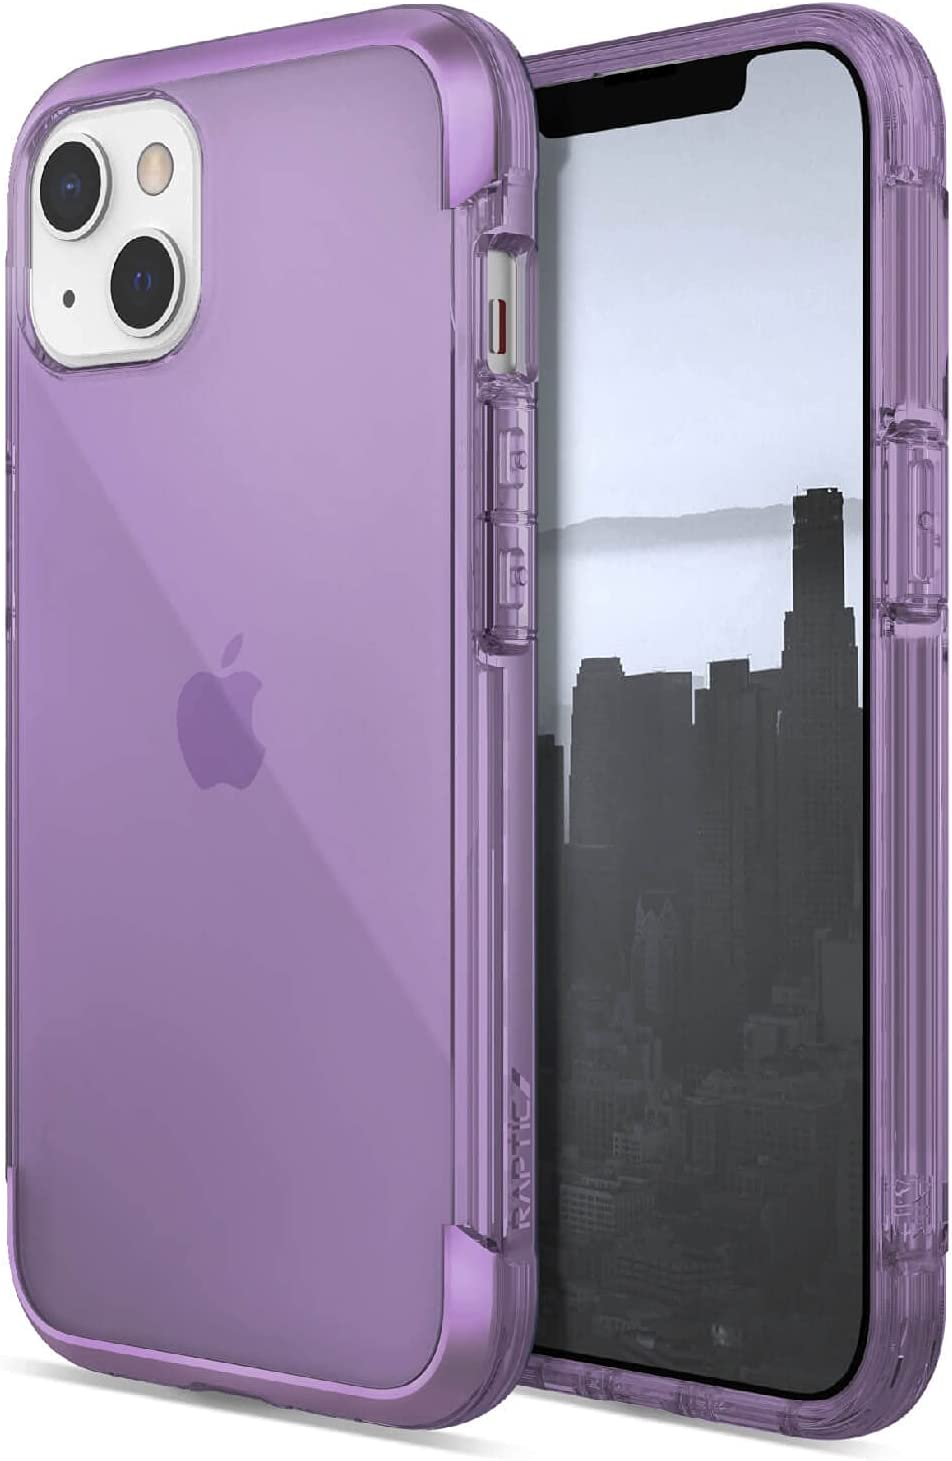 Raptic Air Case Compatible with iPhone 13 Case, Scratch Resistant, Aluminum Metal Bumper, Wireless Charging, 13ft Drop Protection, Fits iPhone 13, Purple